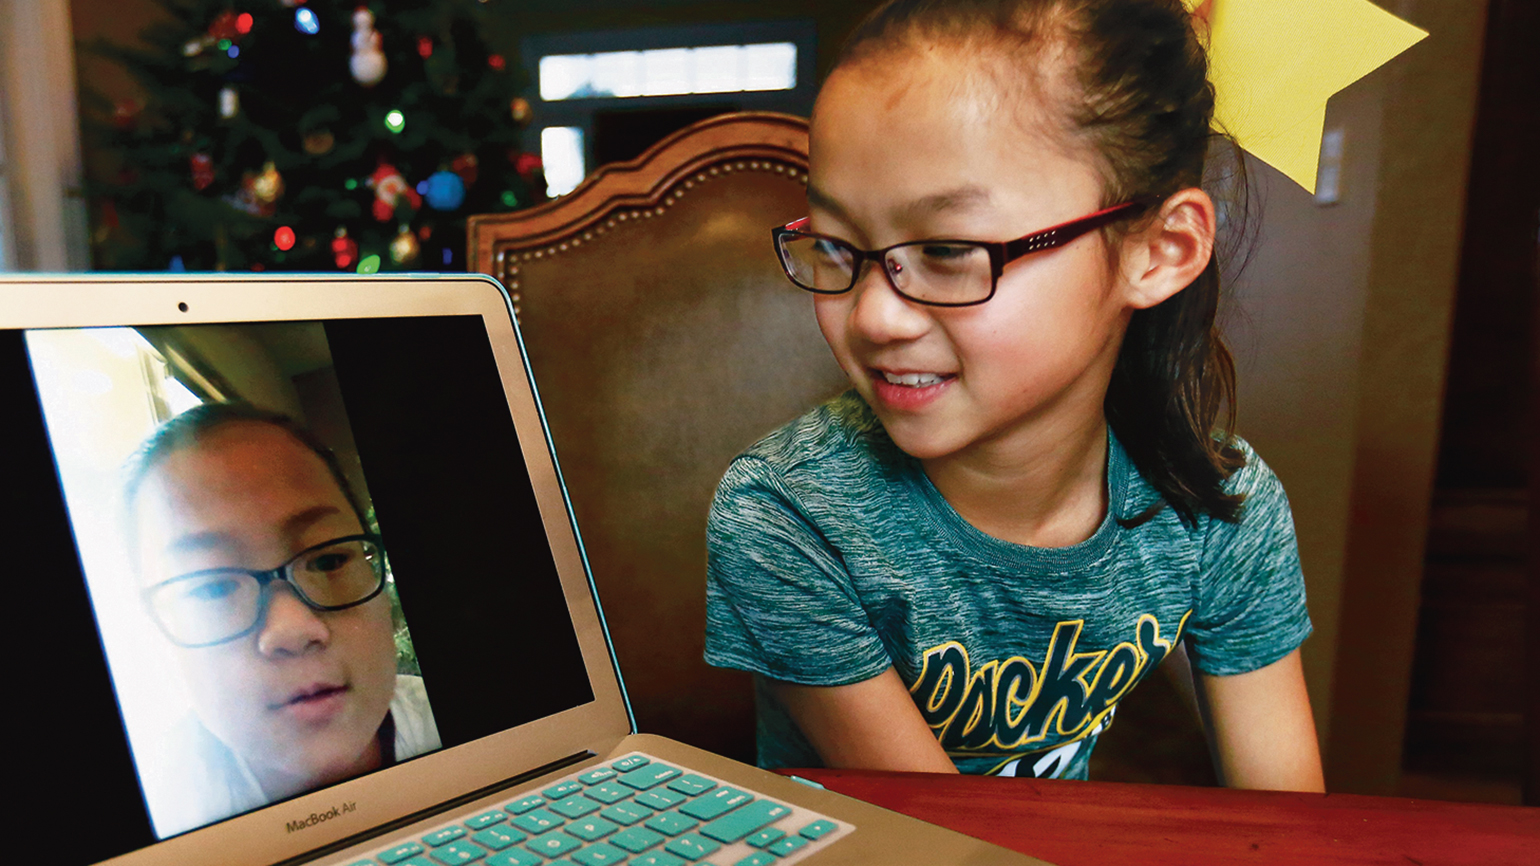 Audrey and Gracie chat via the internet